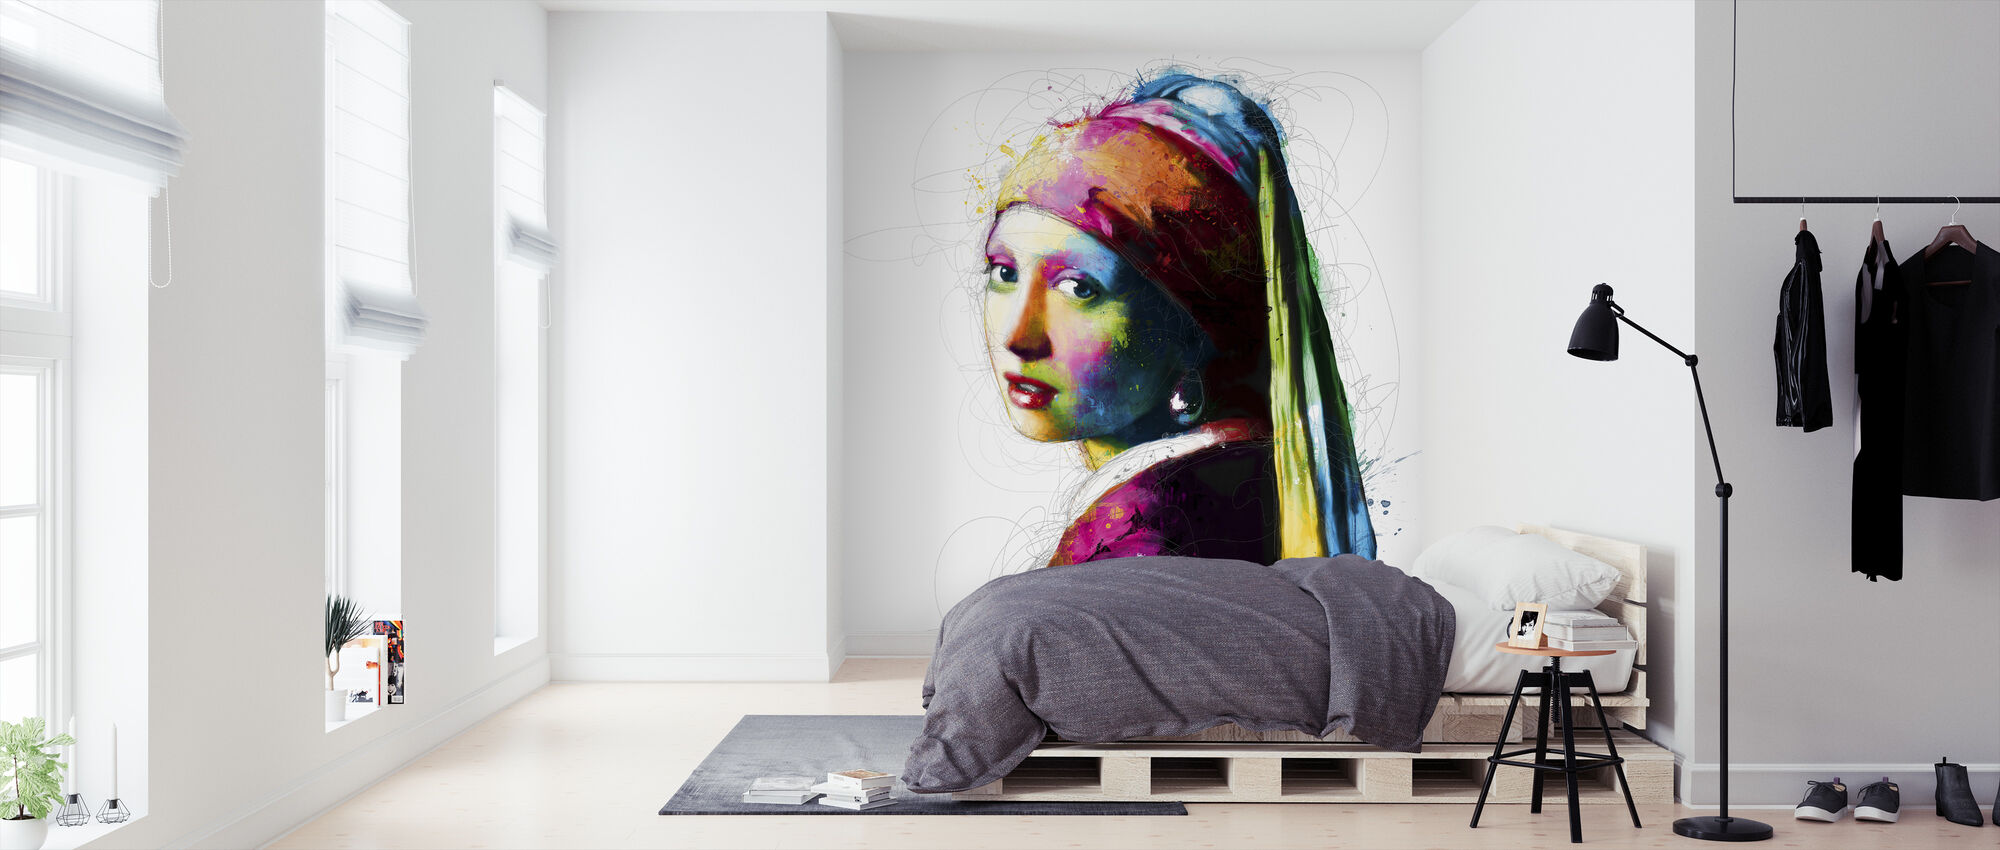 Vermeer Pop - Behang - Slaapkamer